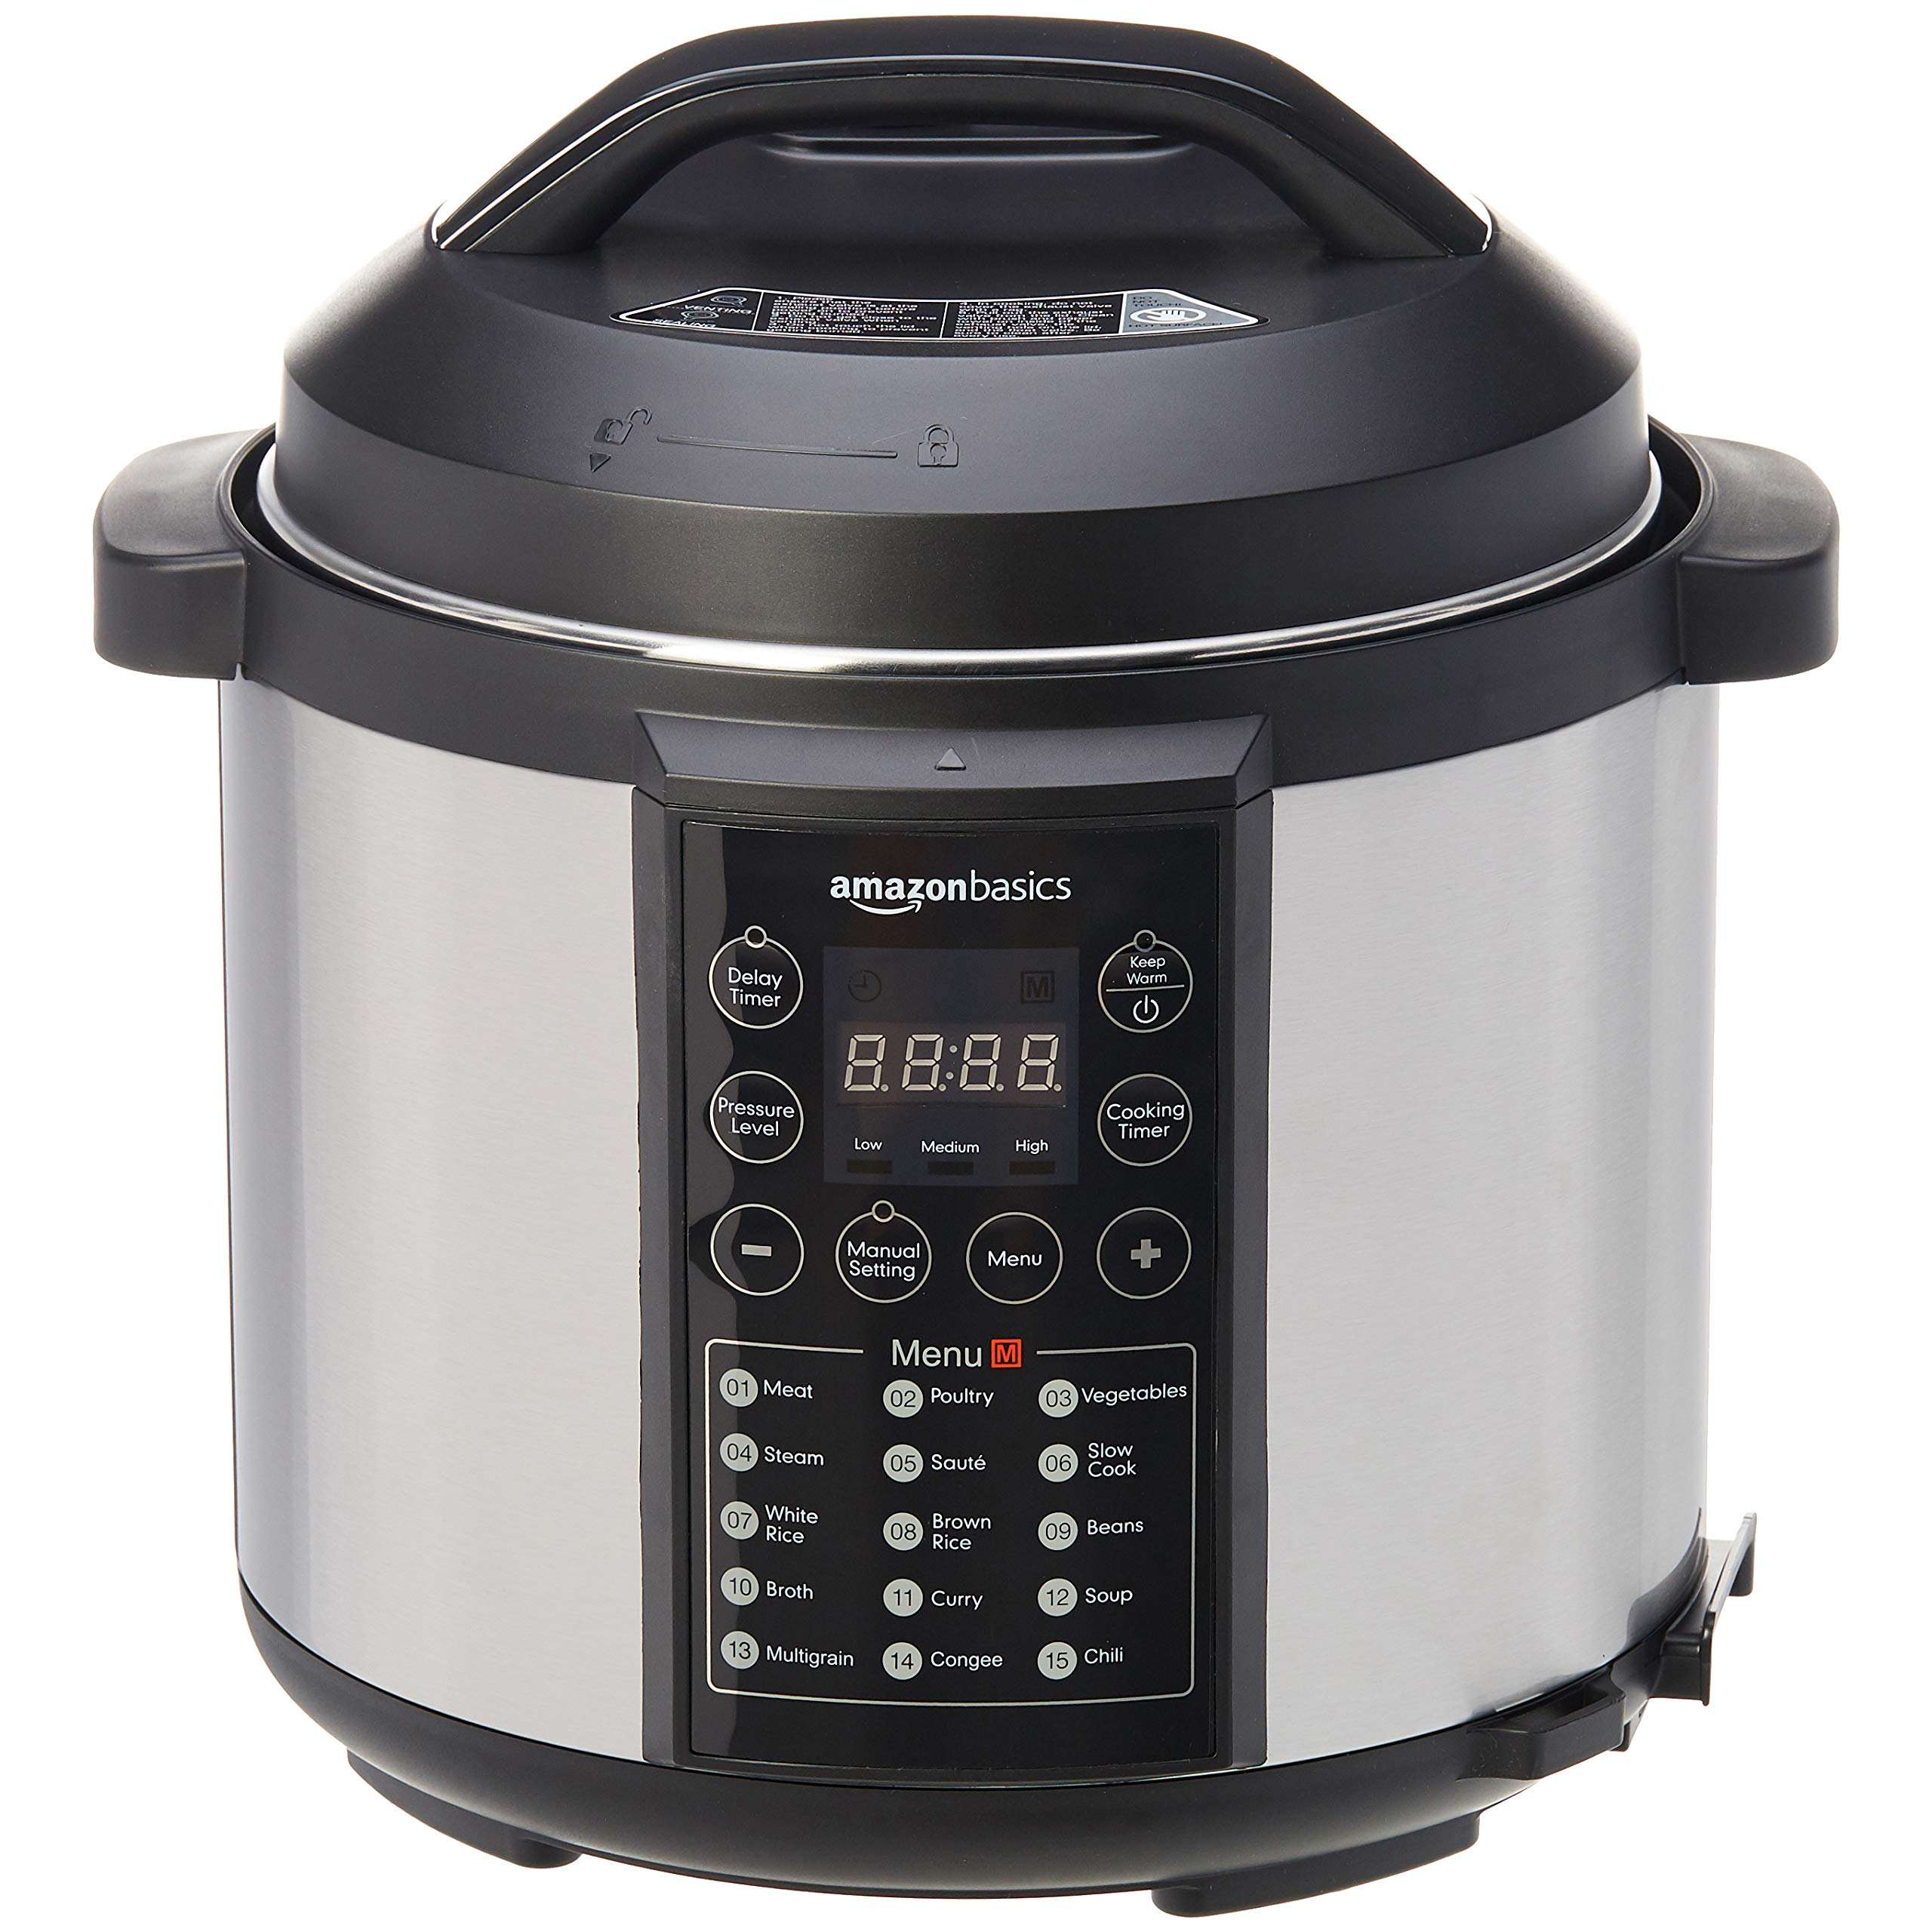 Amazon Basics 23 in 1 Multi-Purpose Electric Steamer, Pressure Cooker, 5.5 Litre, 1000 W, Brushed Stainless Steel, now with downloadable Free Recipe Book (UK plug)